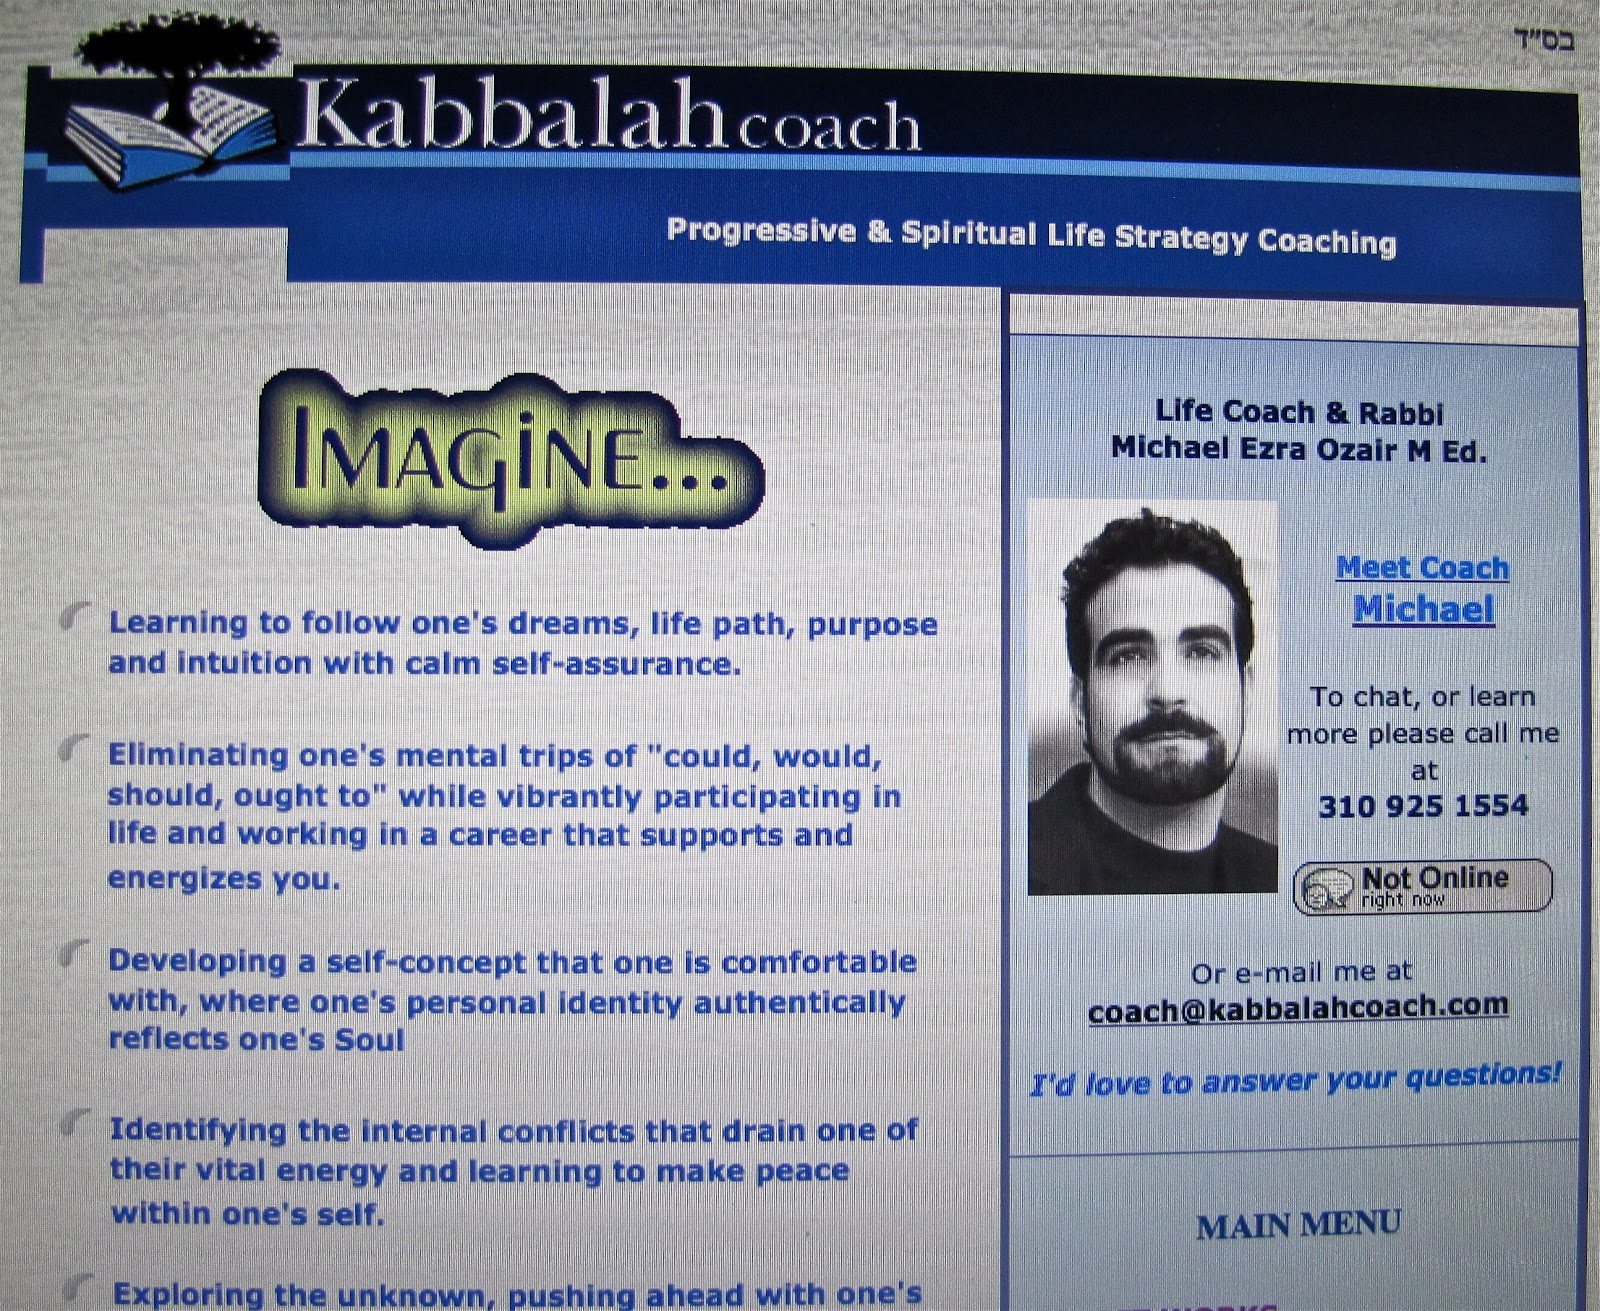 Need help with 10 page research paper on Kabbalah?